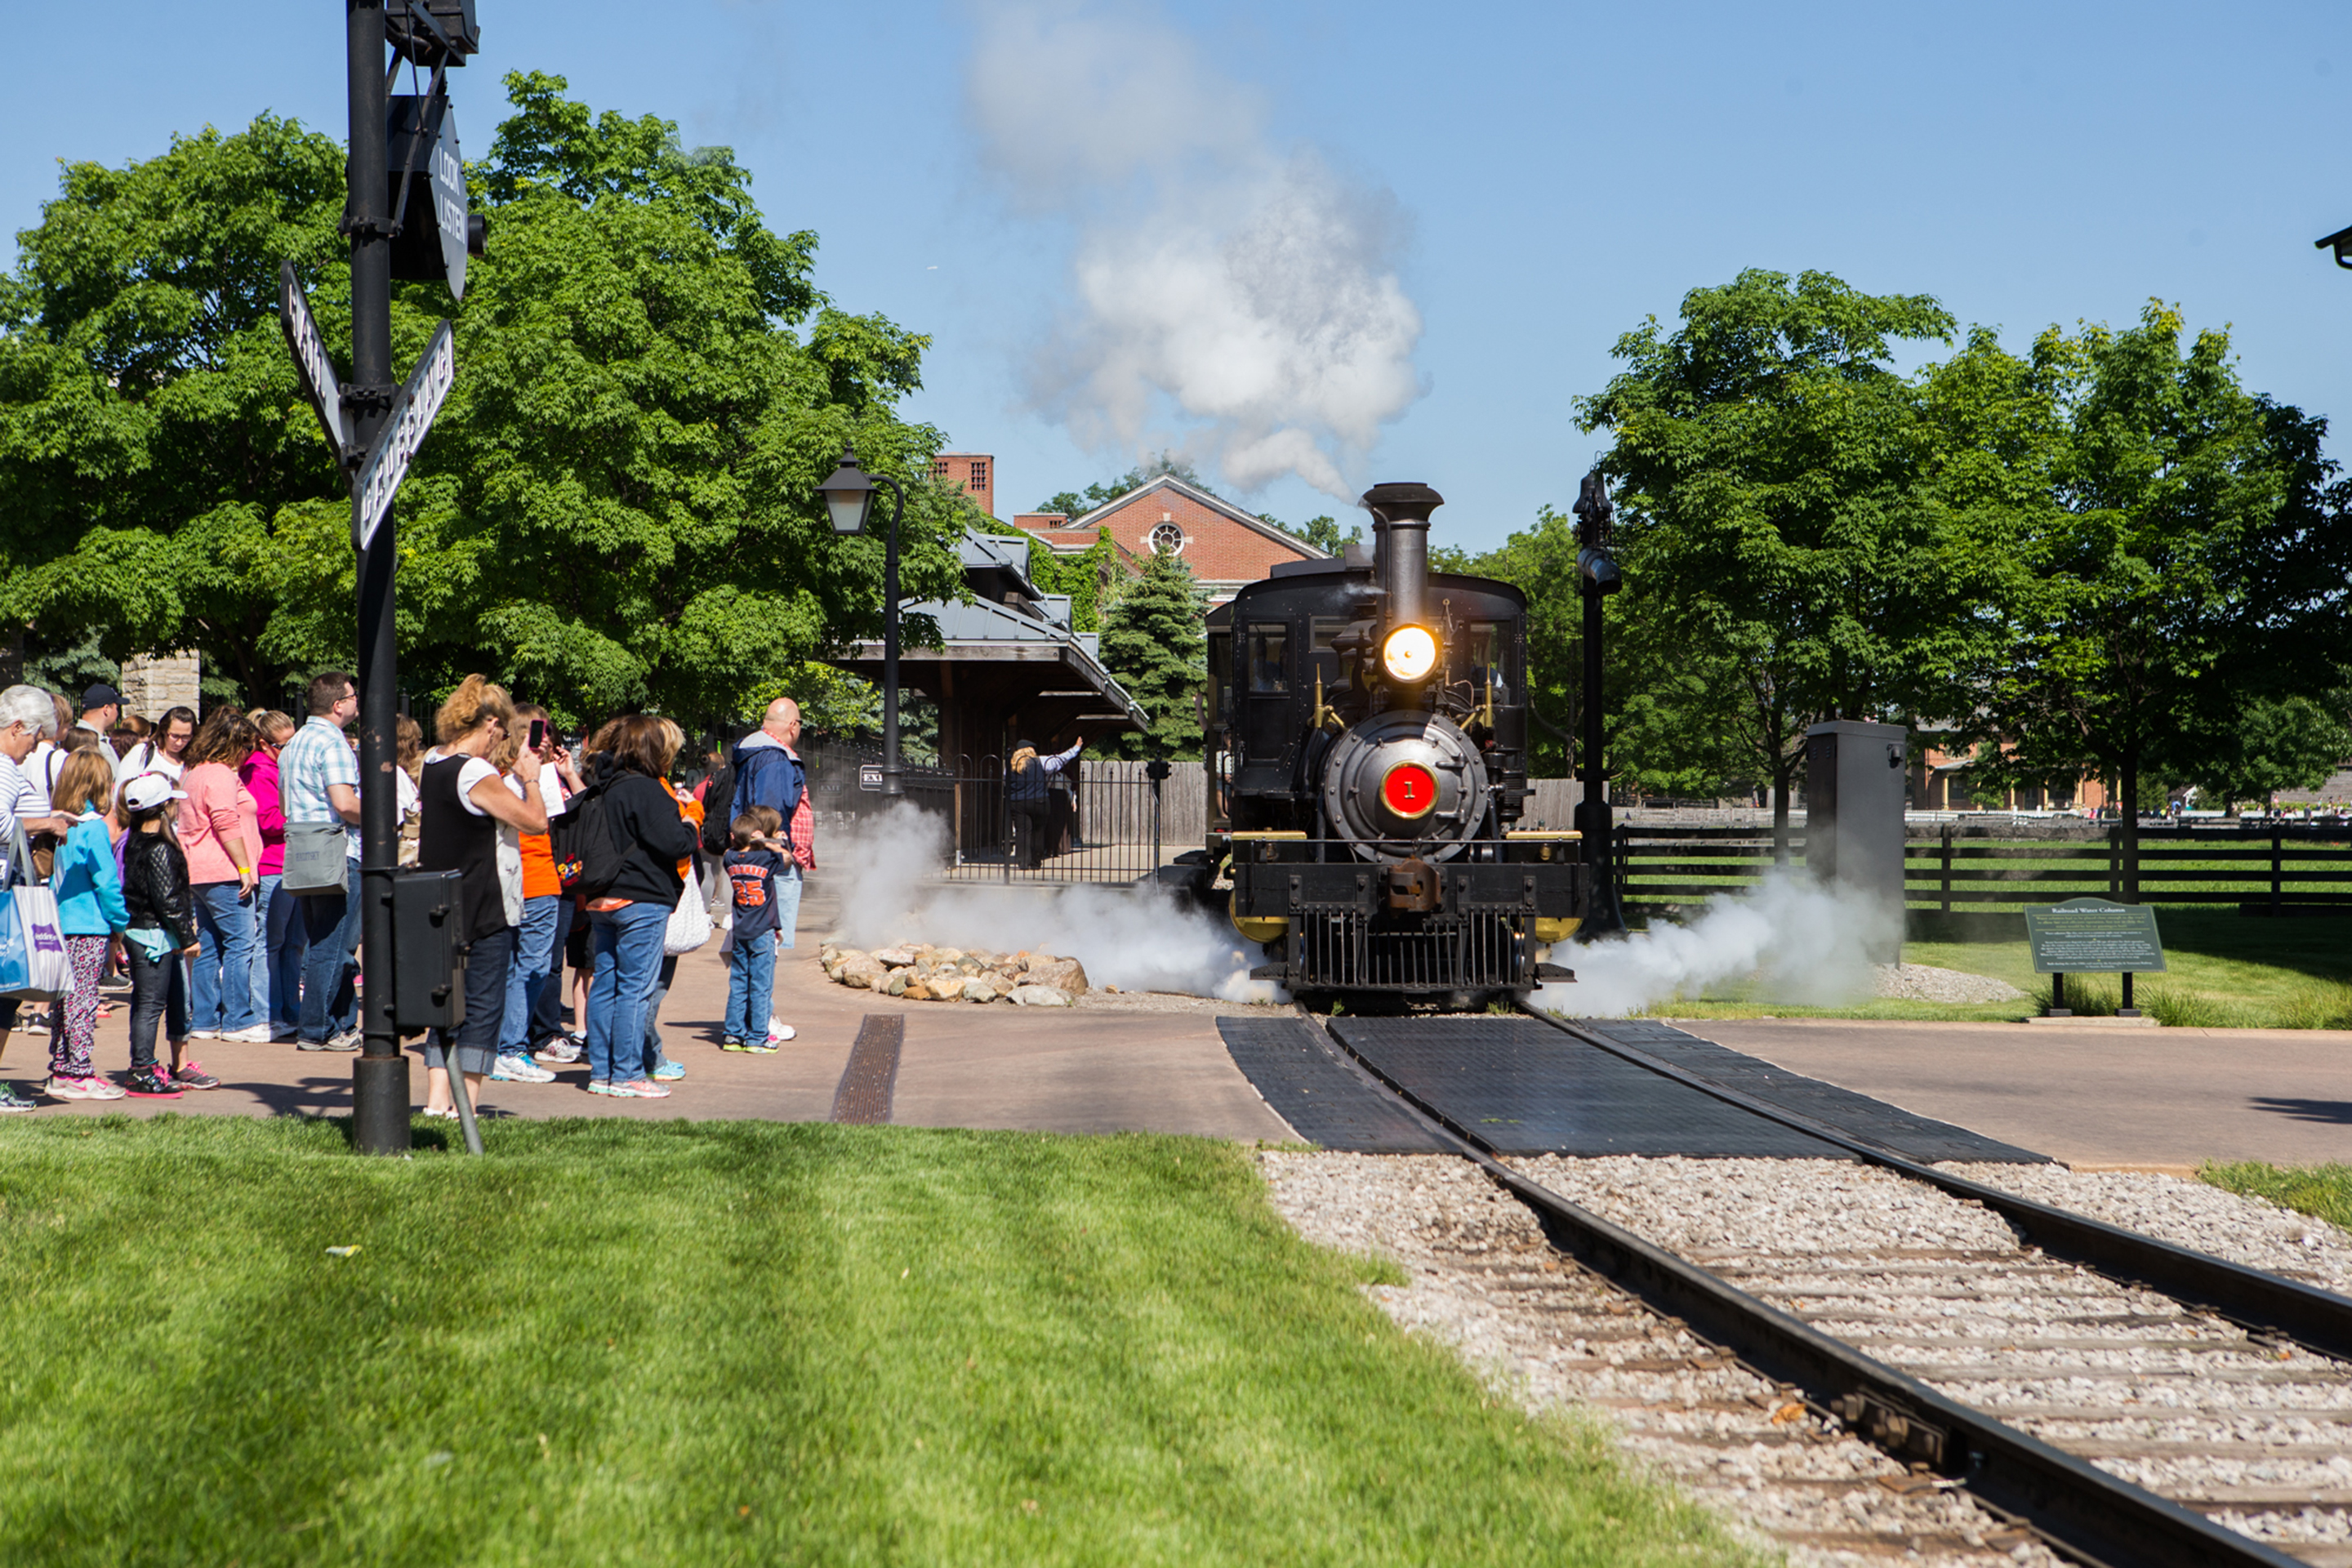 Residents of West Bloomfield are a short 35 minute drive from Greenfield Village and The Henry Ford Museum, an 80 acre indoor and outdoor history museum complex.